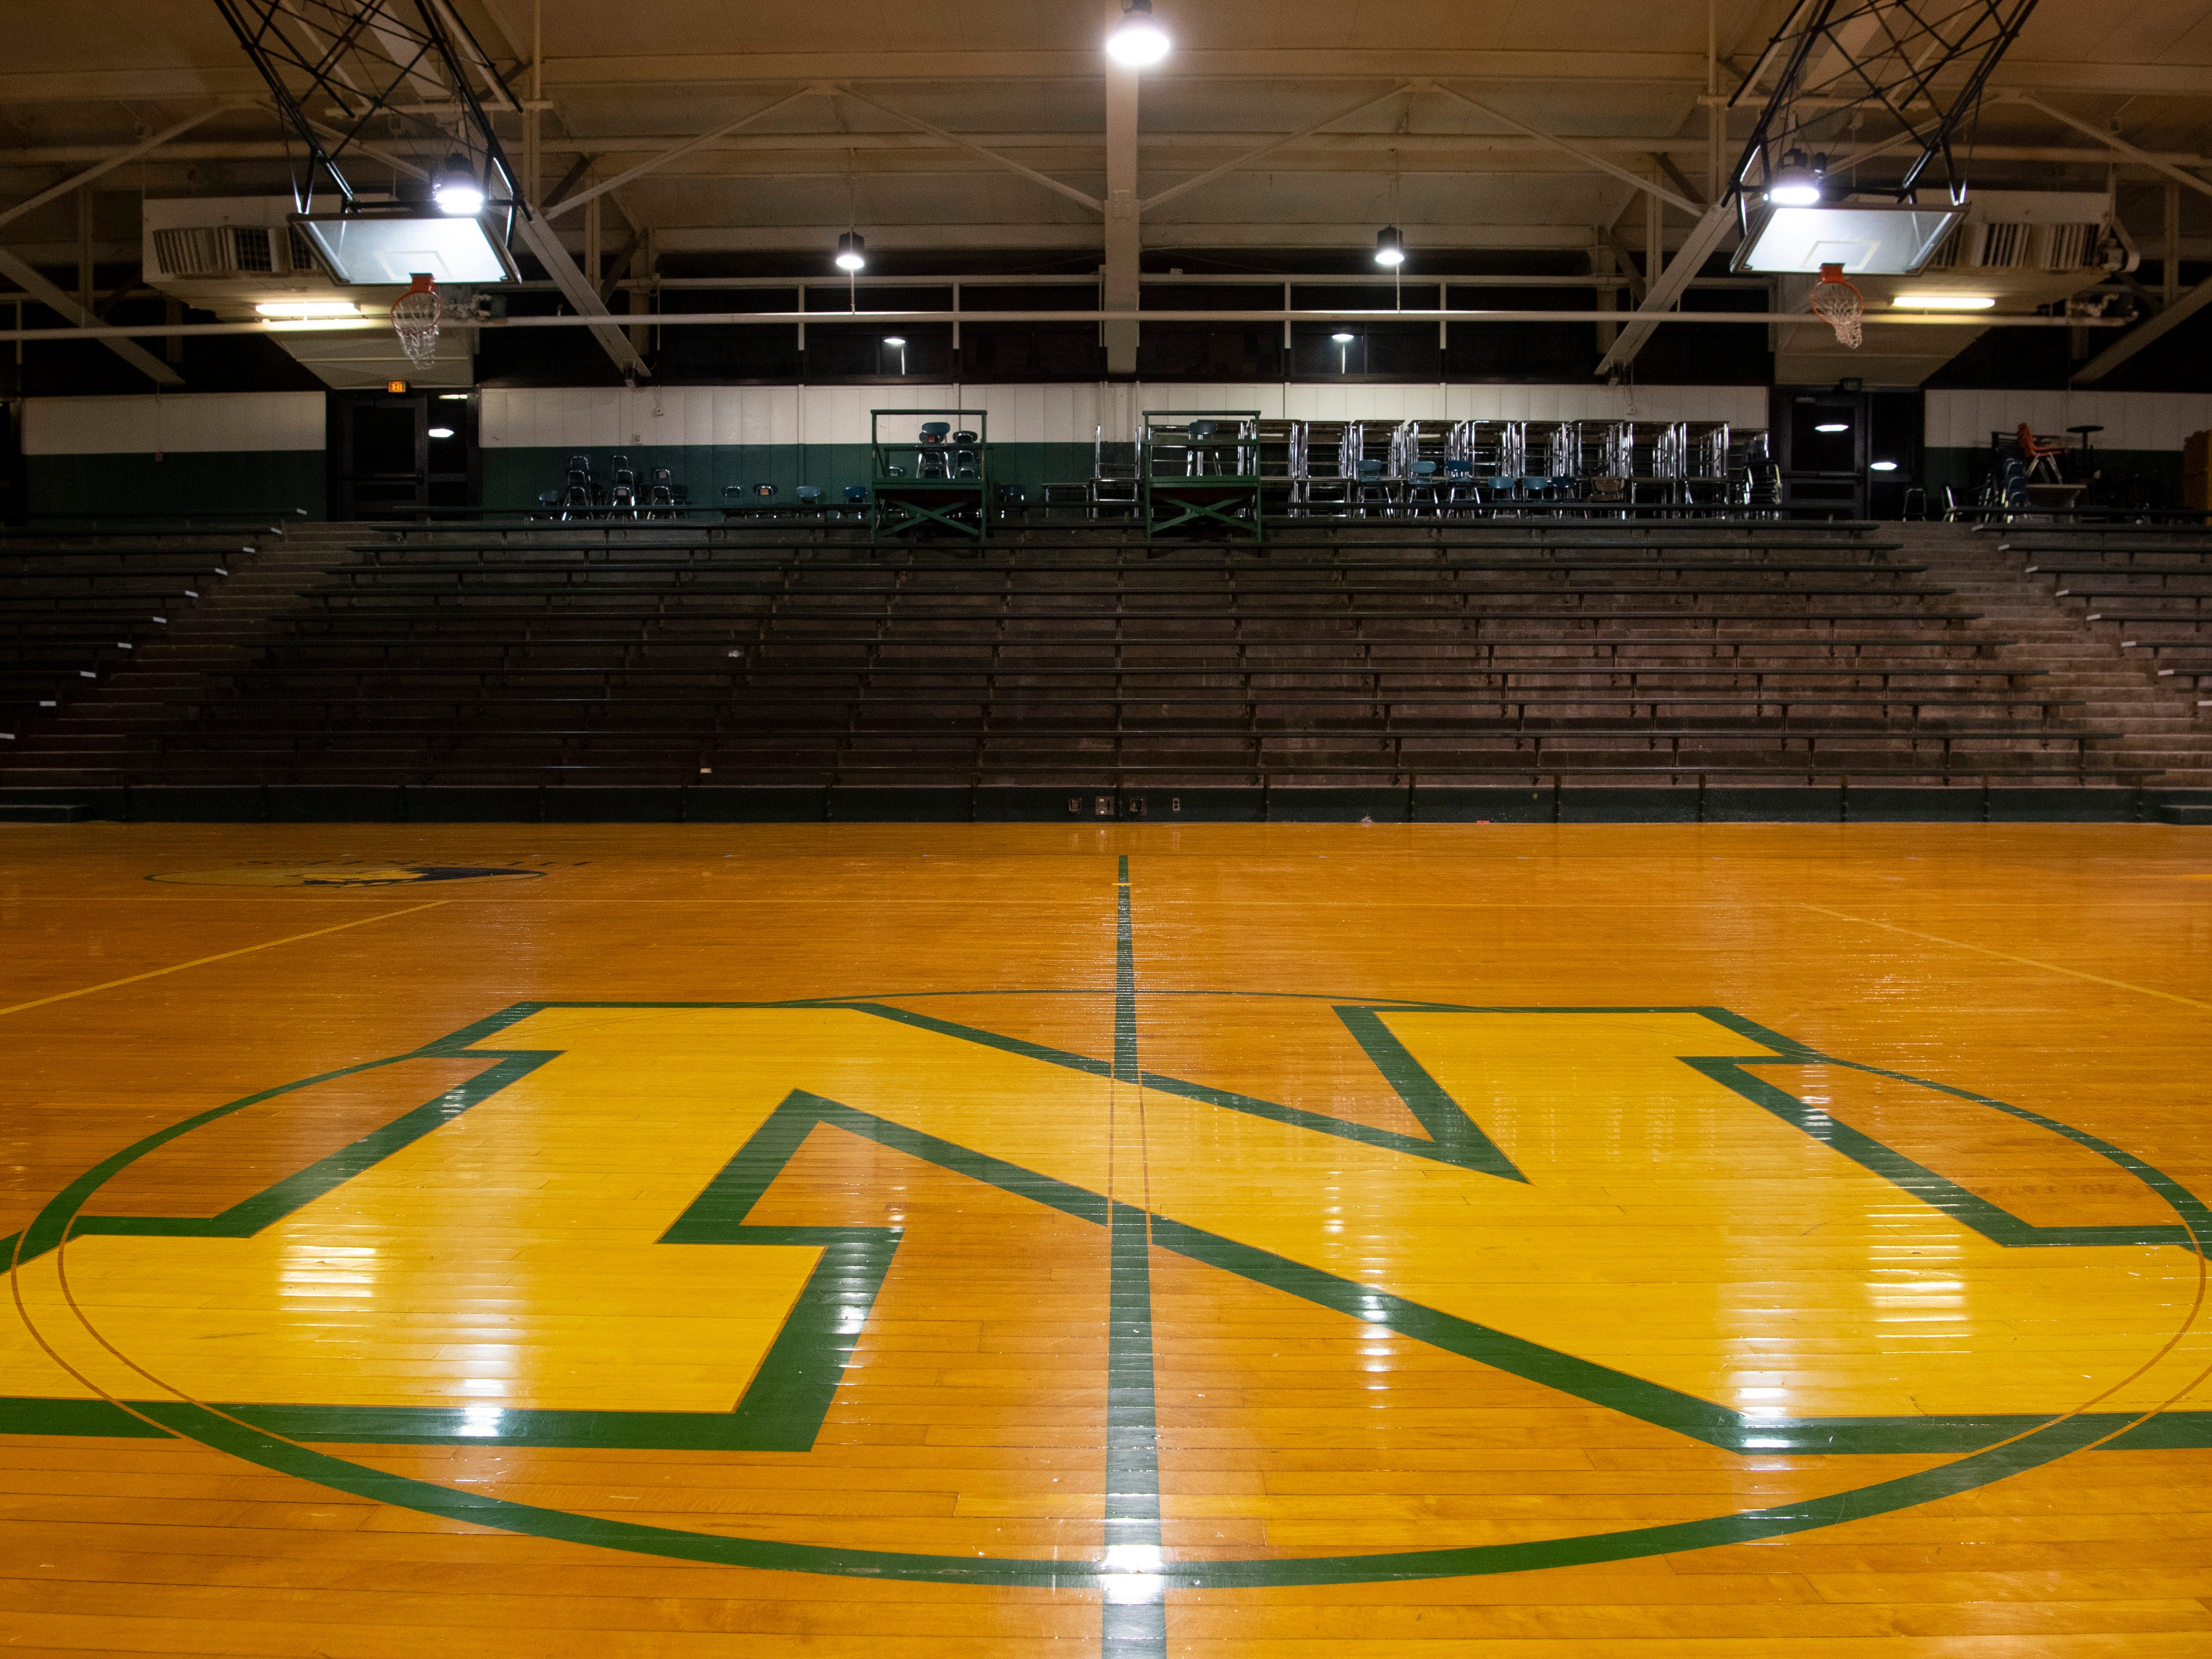 The old North High School gymnasium now sits vacant after the new school was built in Northern Vanderburgh County. It is mostly used for storage by the Evansville-Vanderburgh School Corporation.